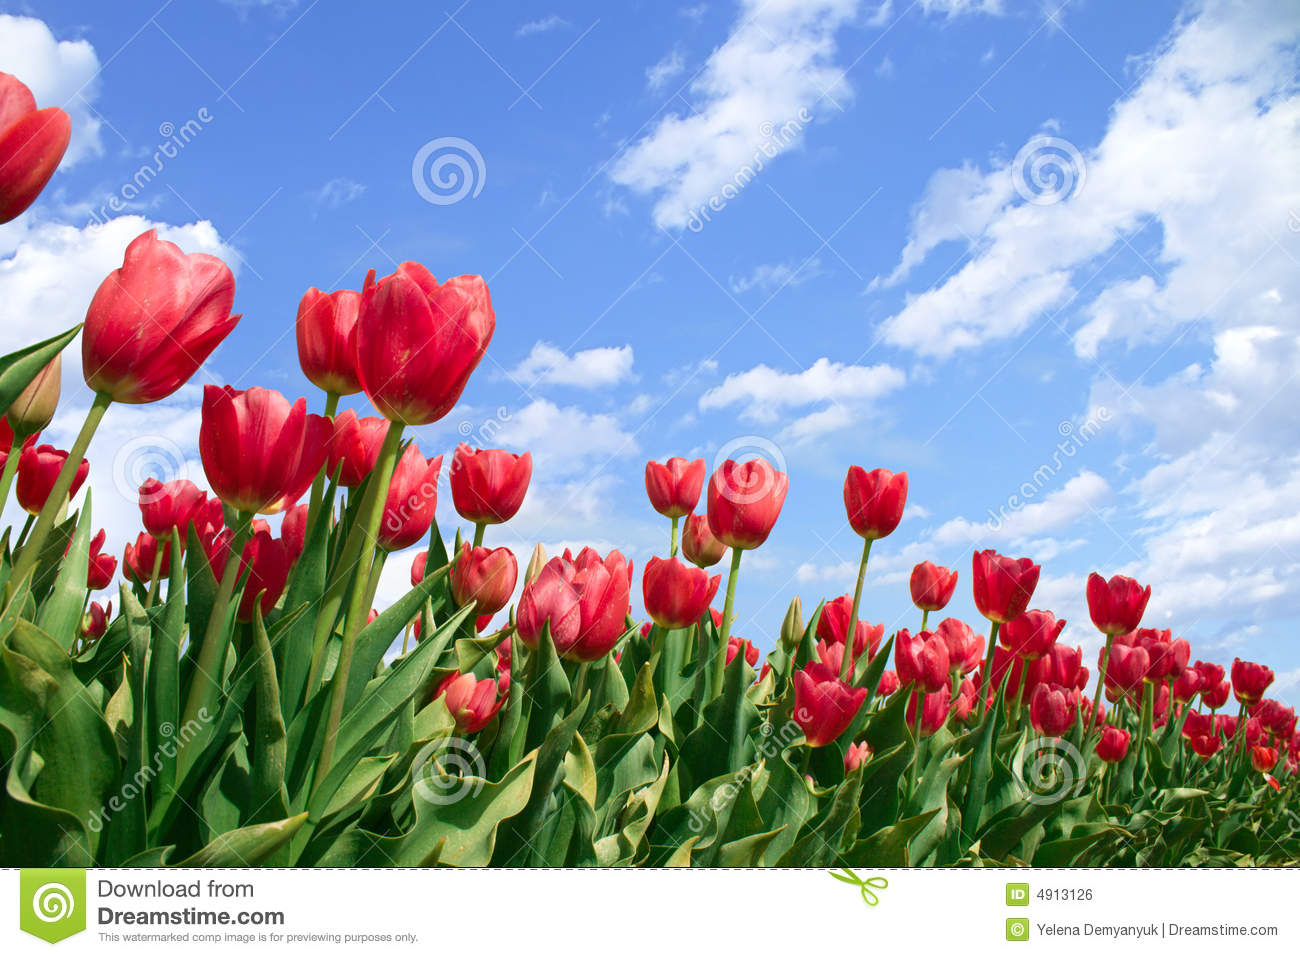 Free images spring flowers clip art royalty free Free spring flowers pictures - ClipartFest clip art royalty free